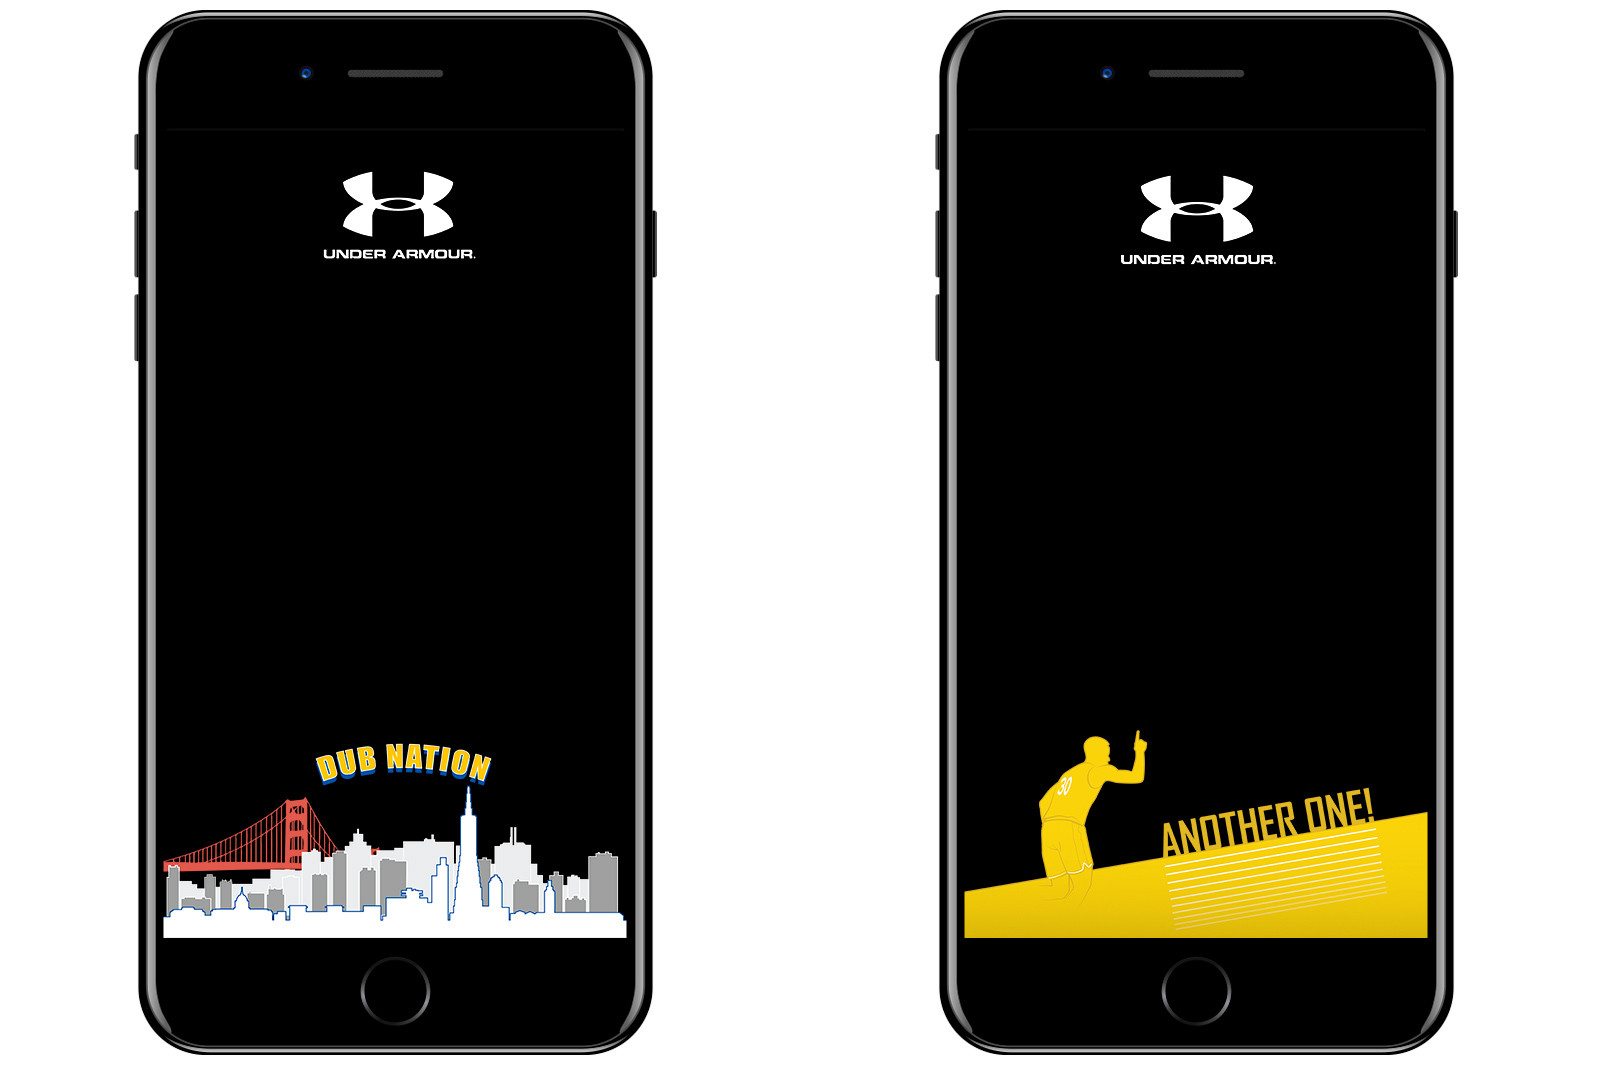 Under Armour Golden State Warriors Snapchat Filters 2017 CCA design students